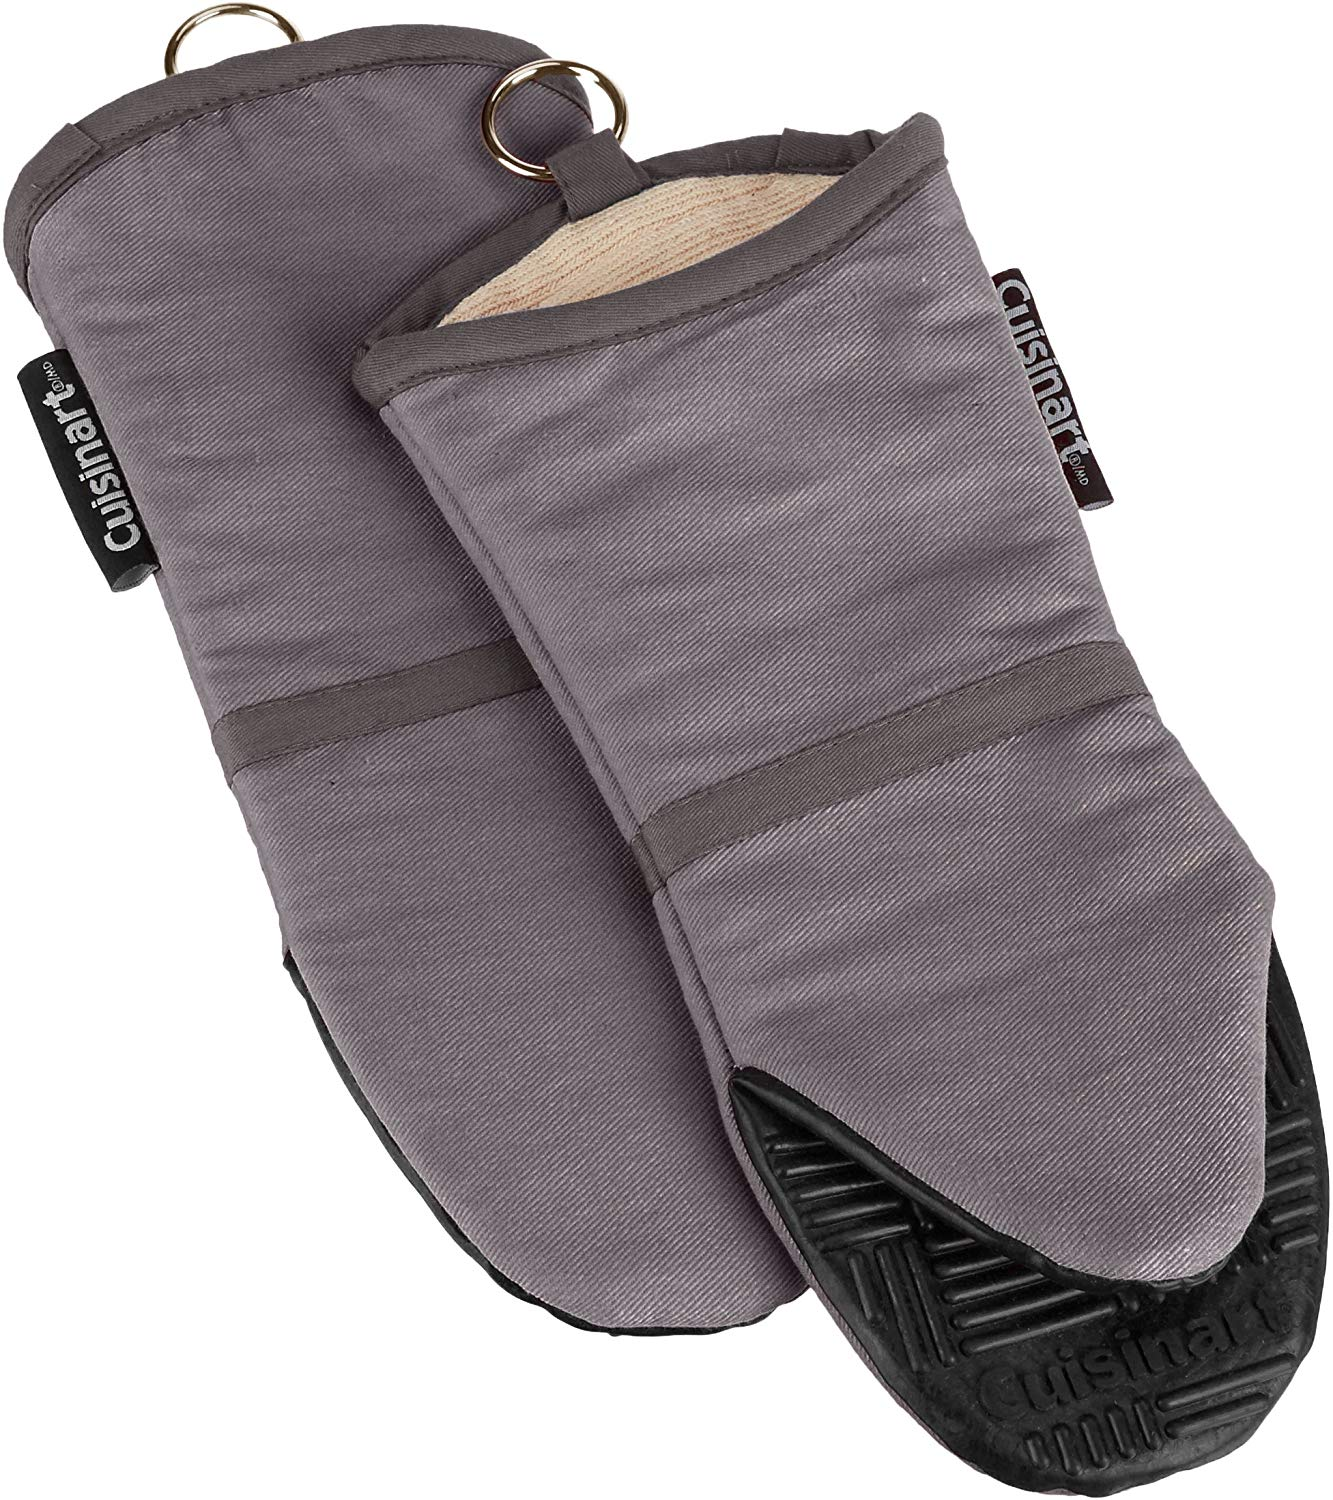 Cuisinart 2pk Silicone Oven Mitts – Grey